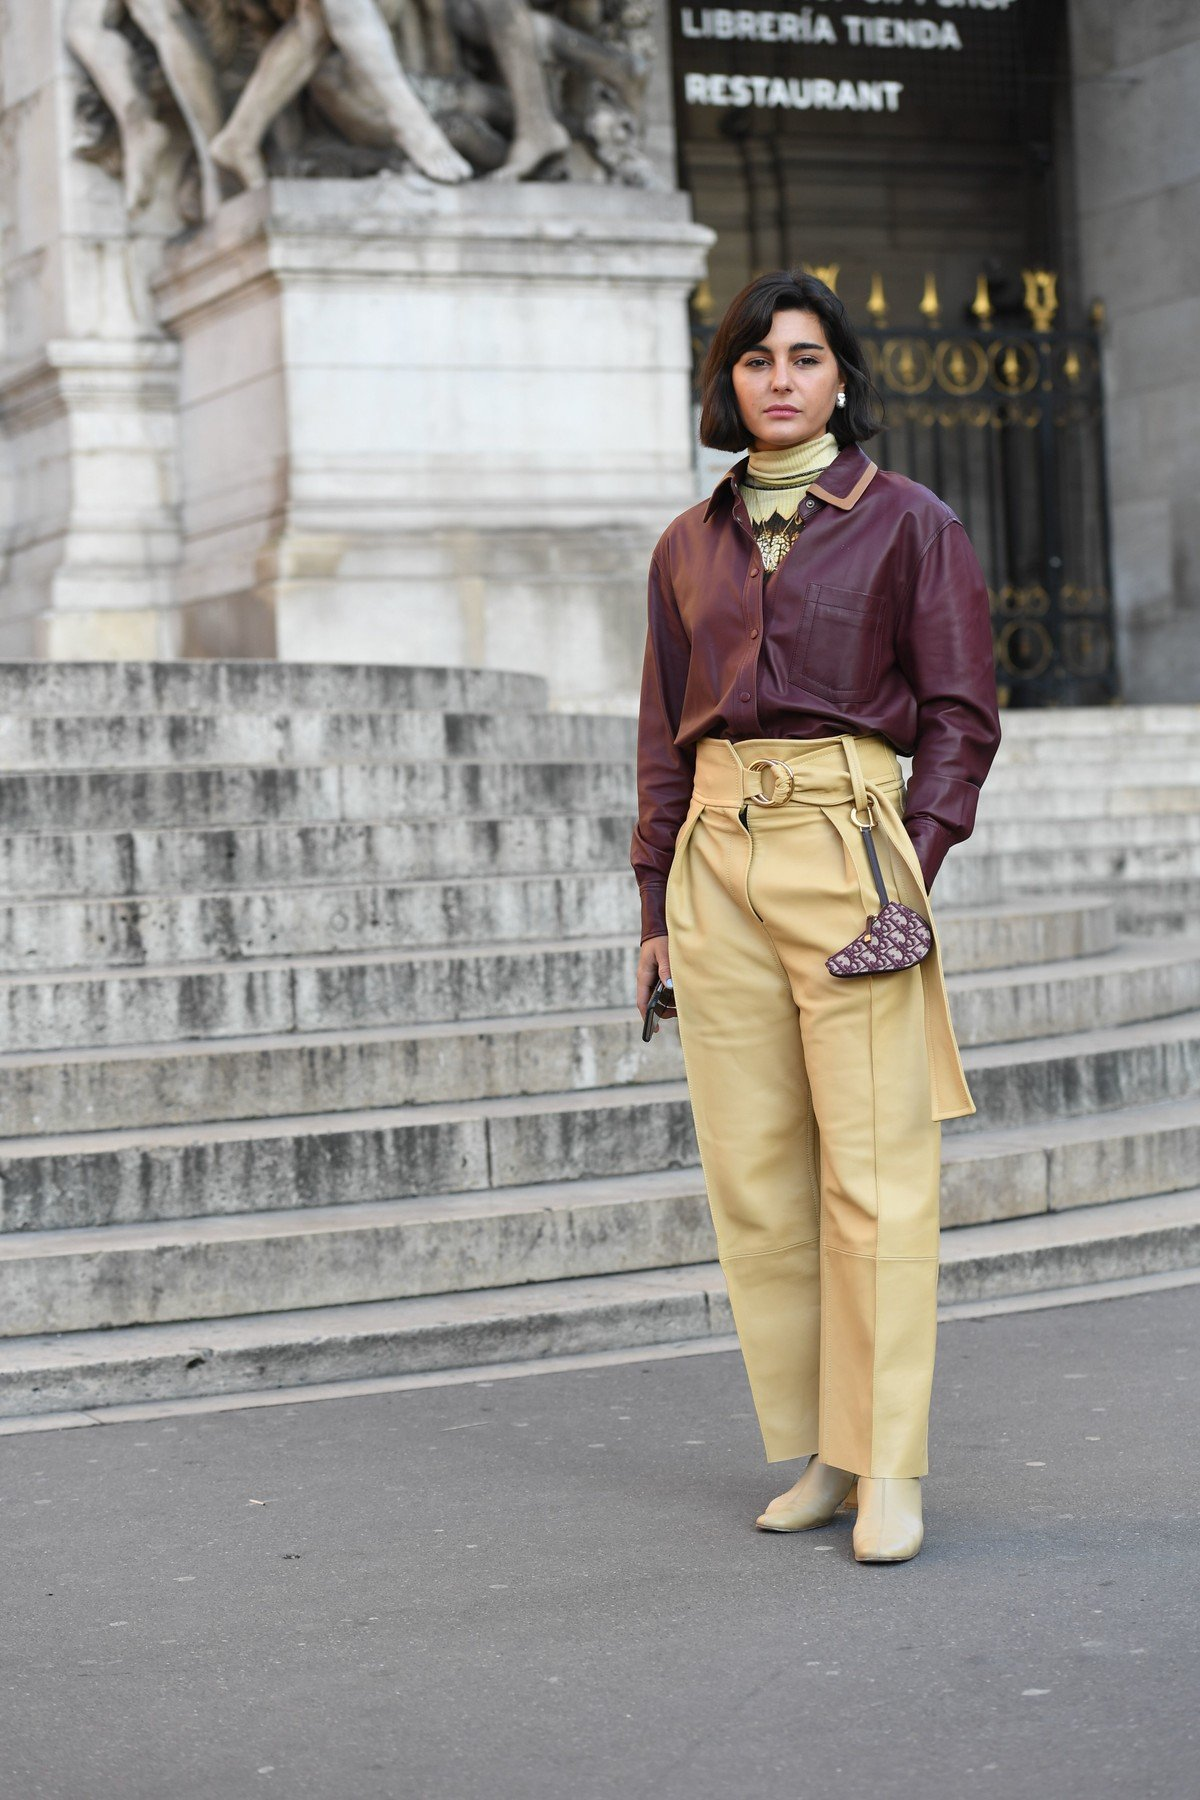 Street Style Street Style, Spring Summer 2019, Haute Couture Fashion Week, Paris,  France - 21 Jan 2019, Image: 409187032, License: Rights-managed, Restrictions: , Model Release: no, Credit line: Profimedia, TEMP Rex Features